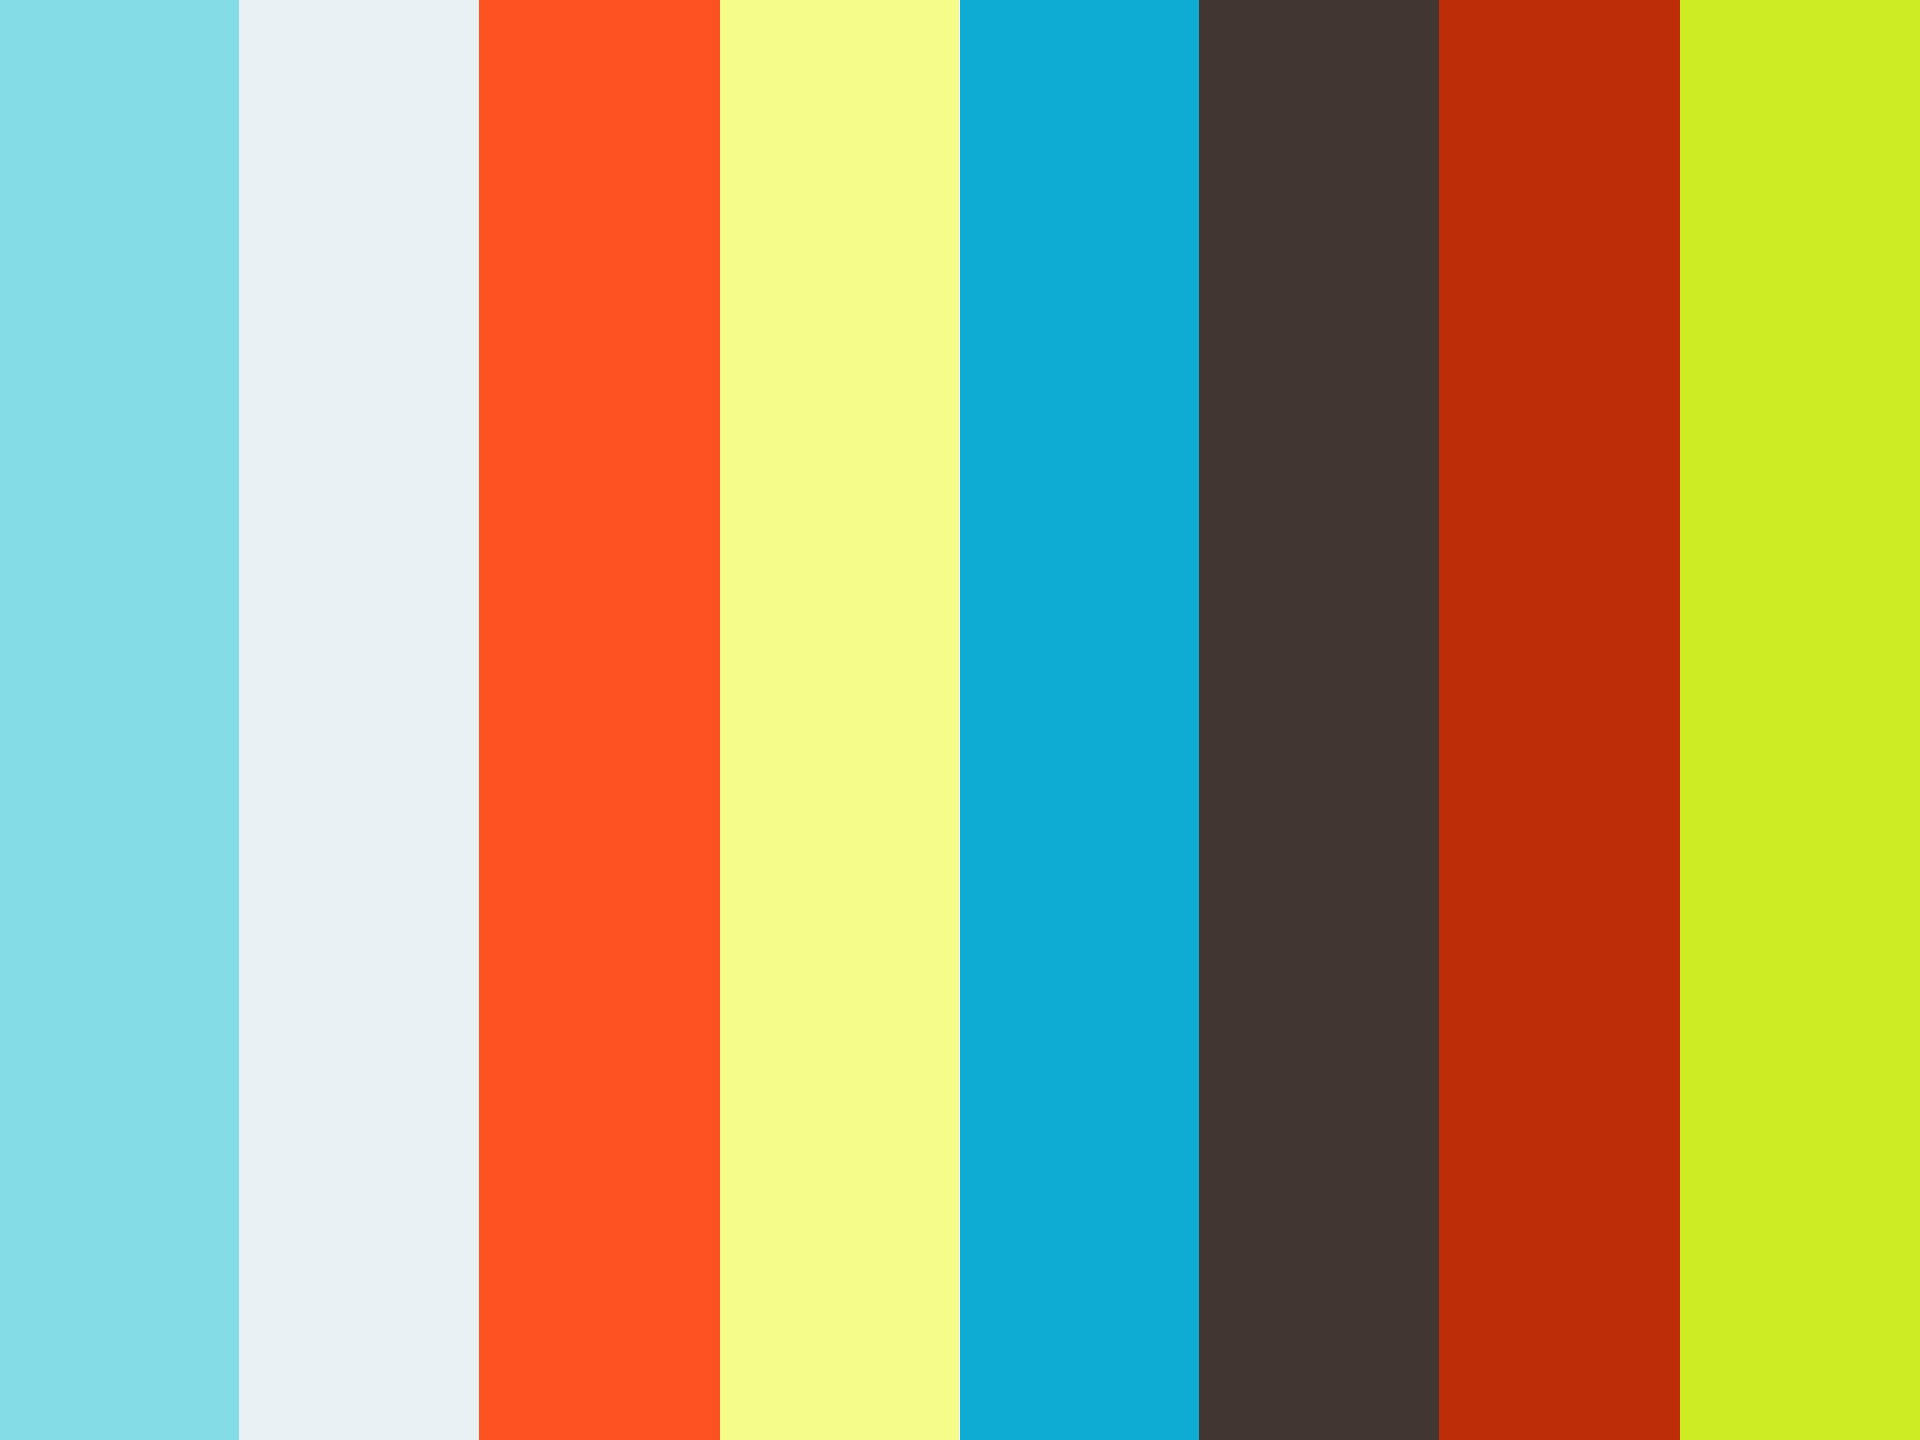 Laparoscopic Parastomal Hernia Repair 2010